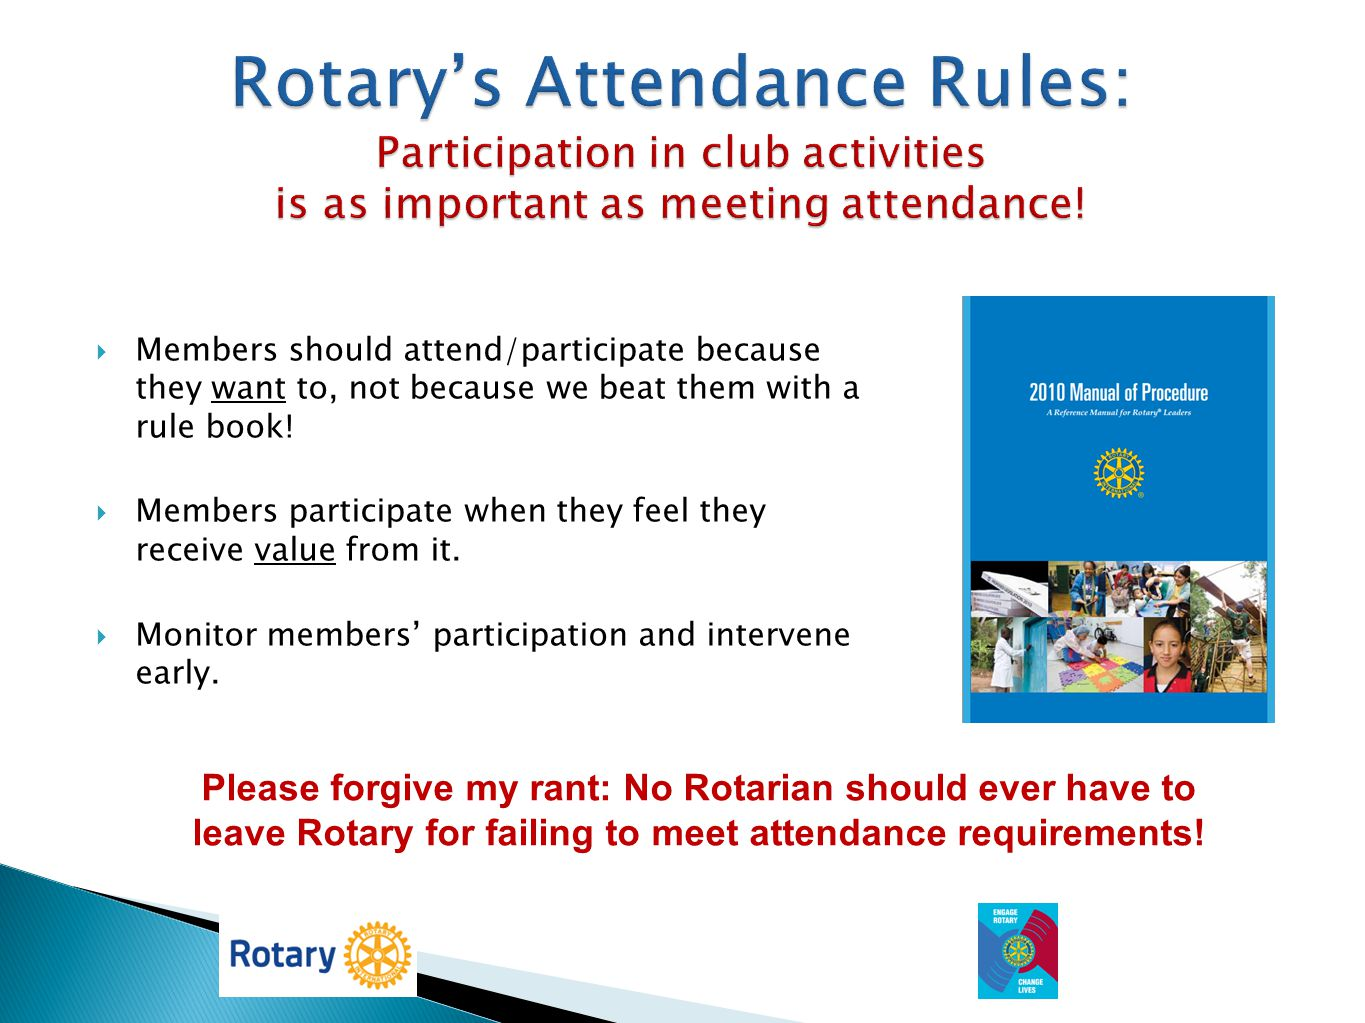 Rotary's Attendance Rules: Participation in club activities is as important as meeting attendance!